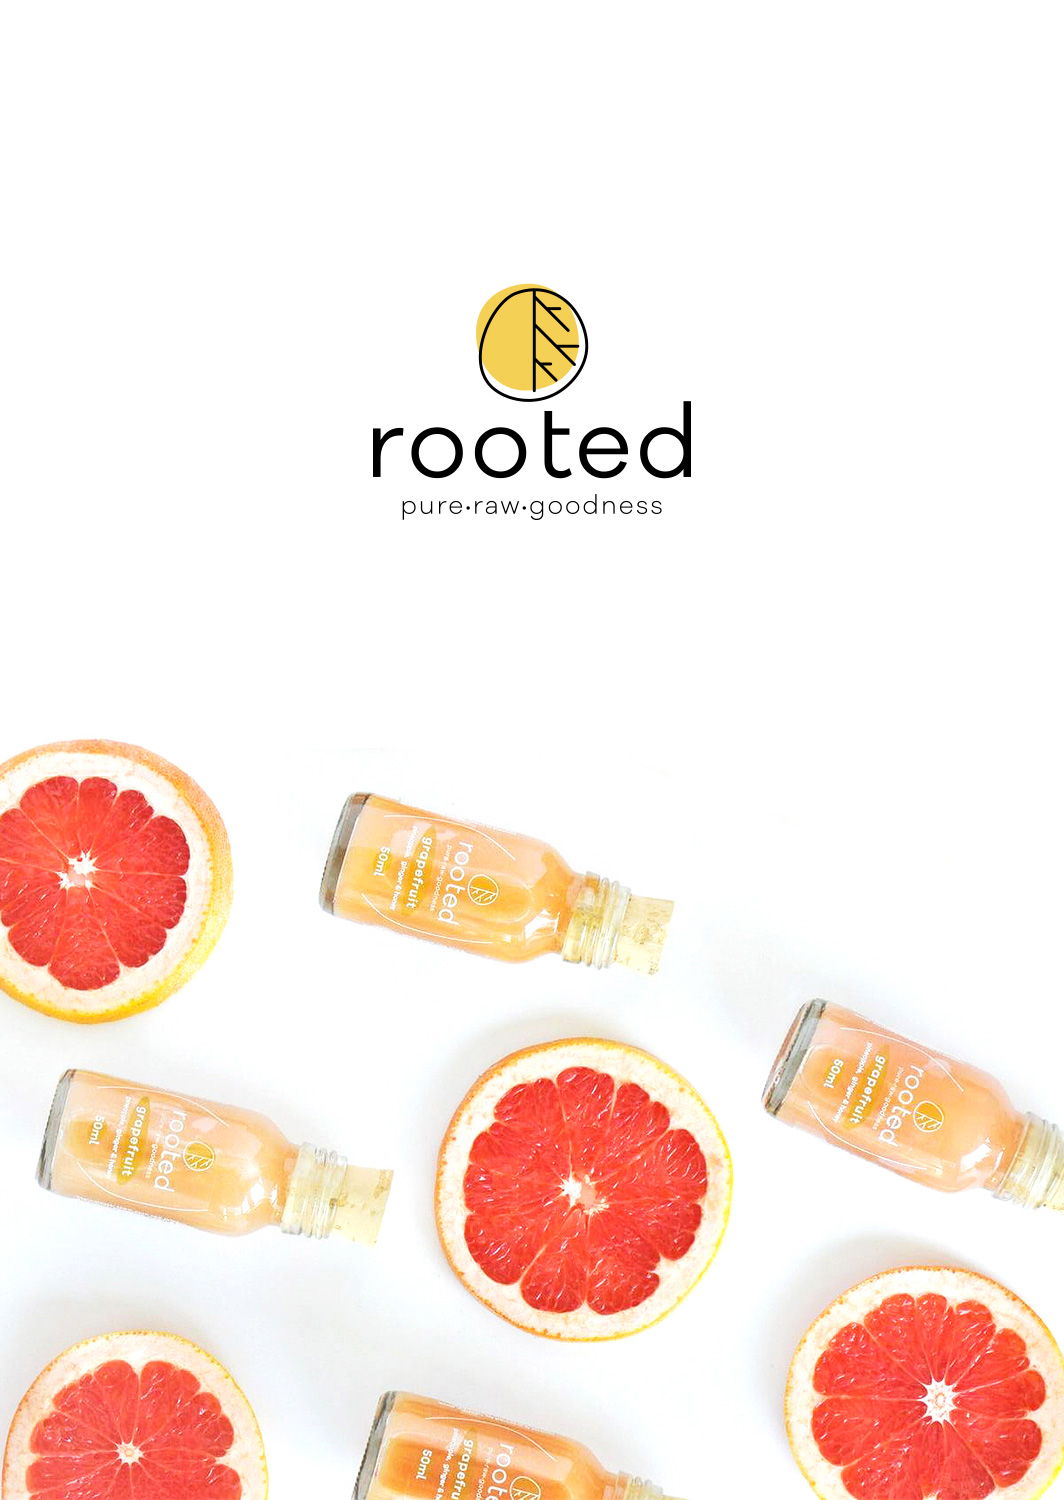 easthouse-co-rooted-banner-mobile